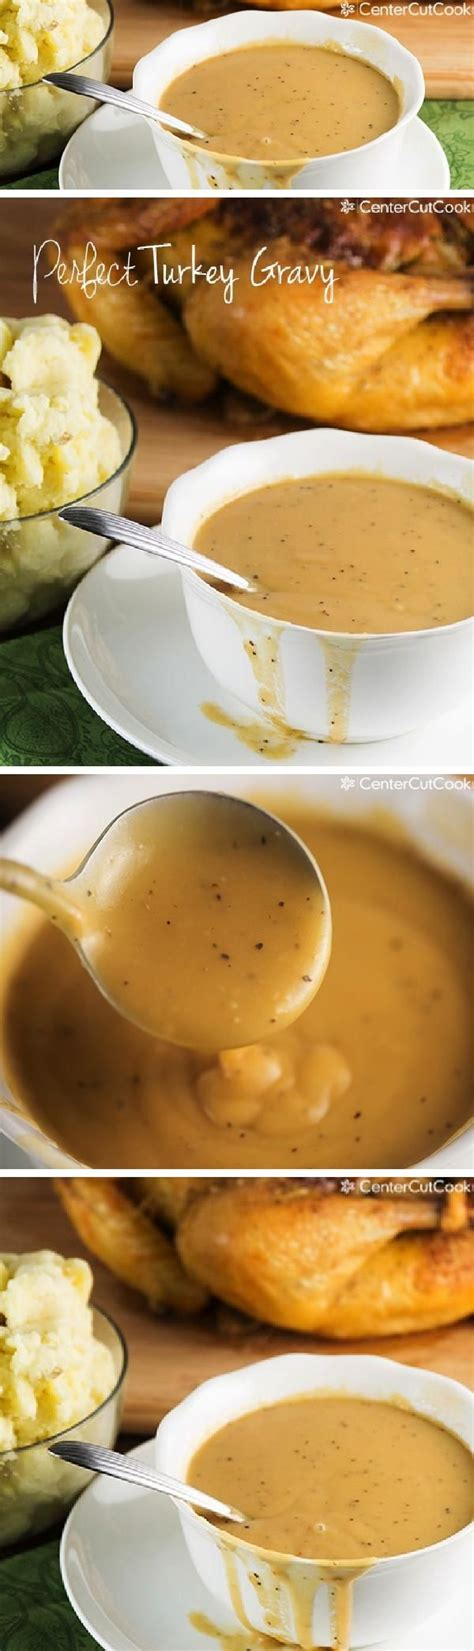 turkey gravy recipes 25 best ideas about thanksgiving on pinterest thanksgiving food thanksgiving desserts and